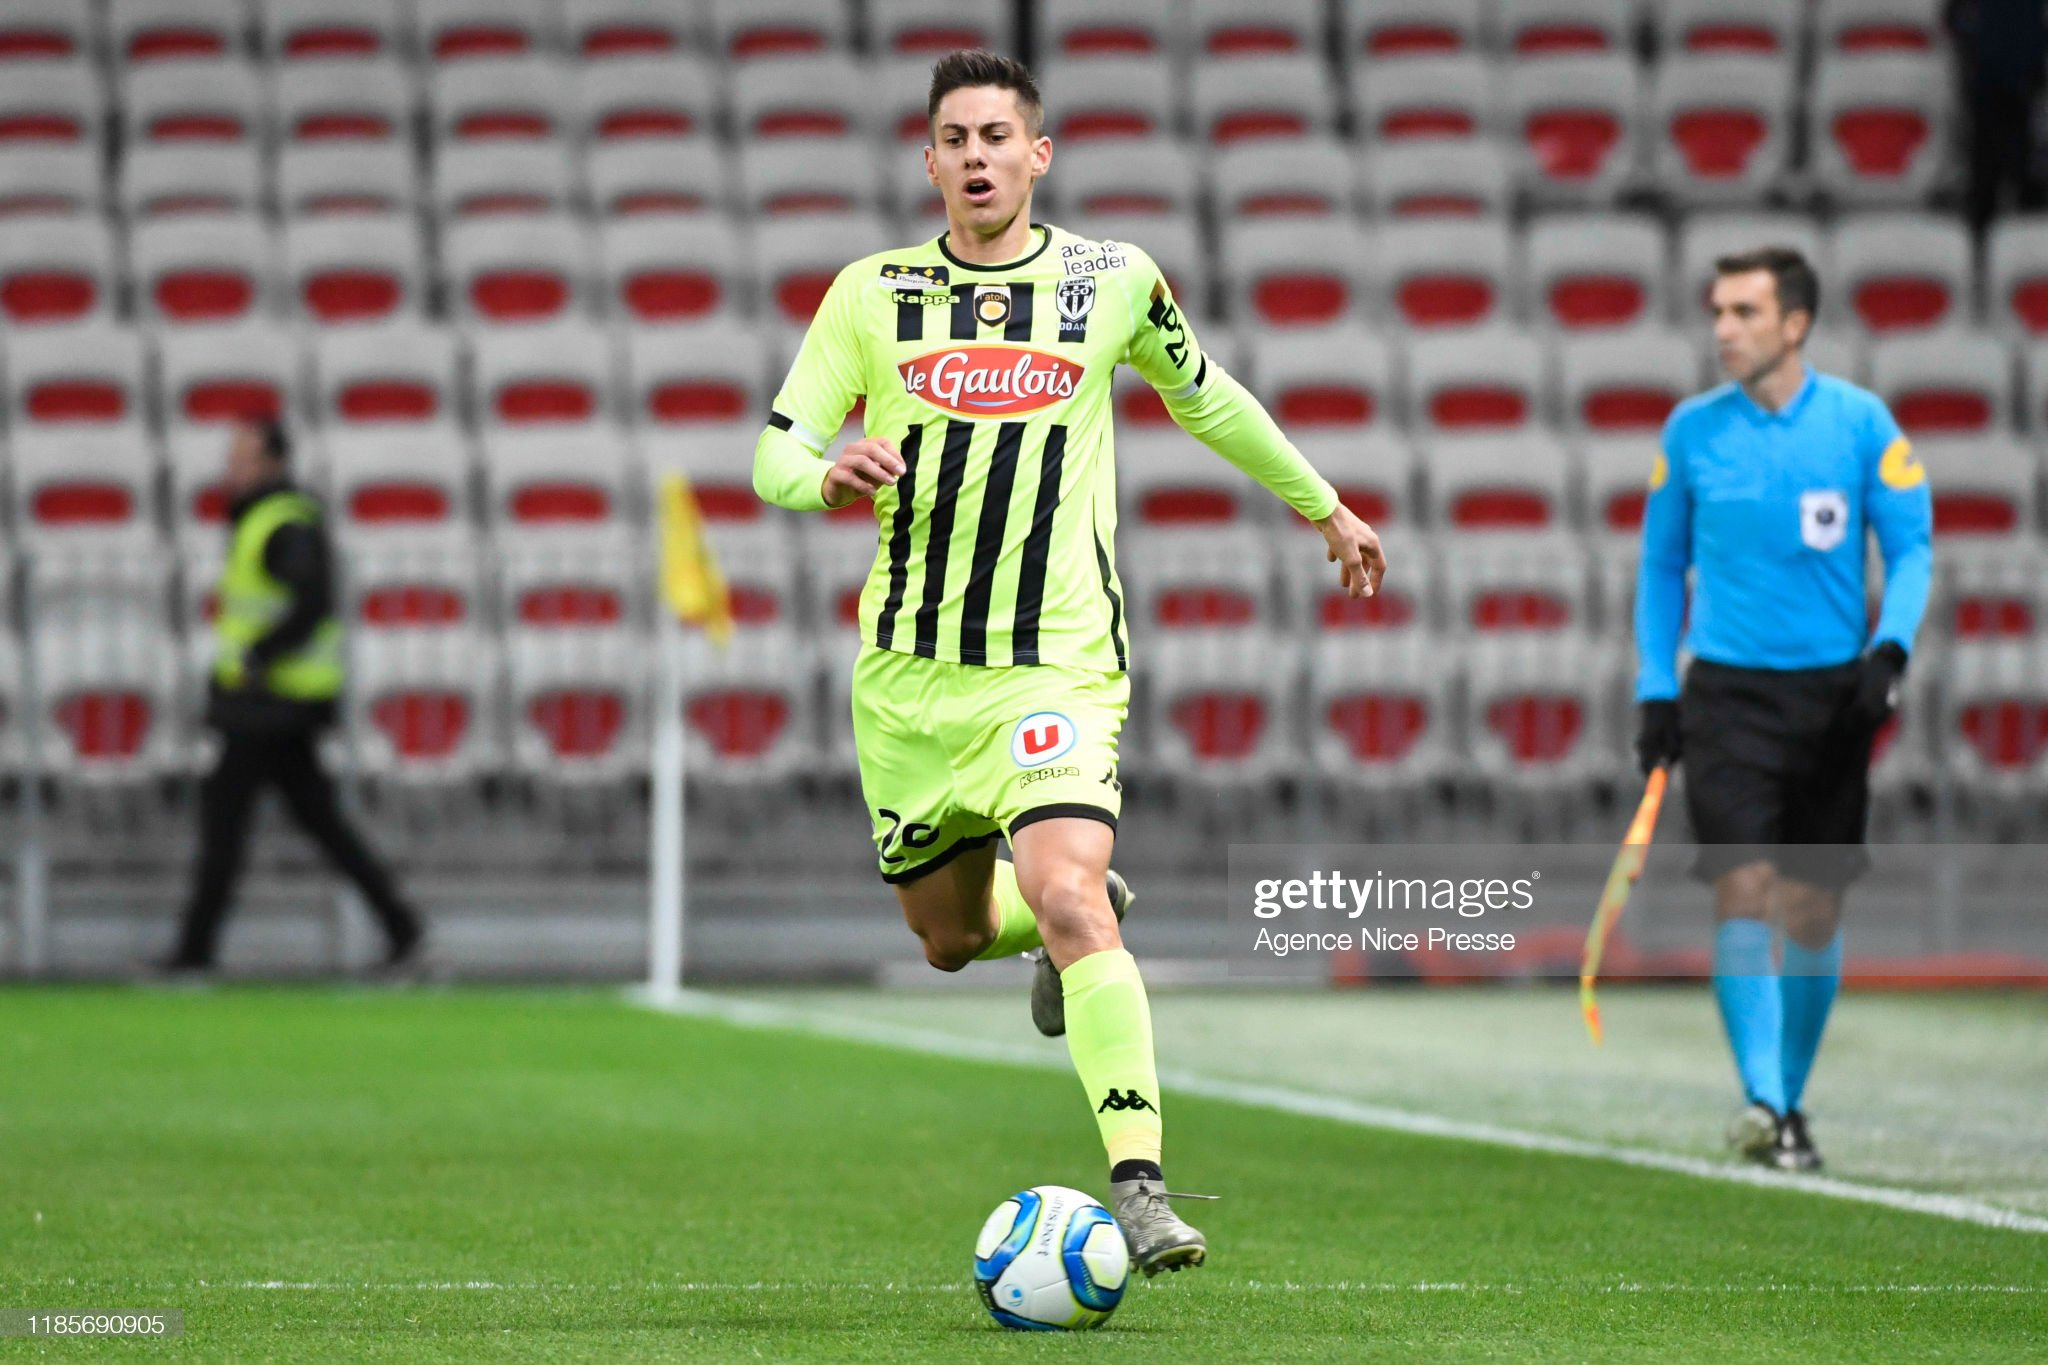 https://media.gettyimages.com/photos/theo-pellenard-of-angers-during-the-ligue-1-match-between-nice-and-picture-id1185690905?s=2048x2048